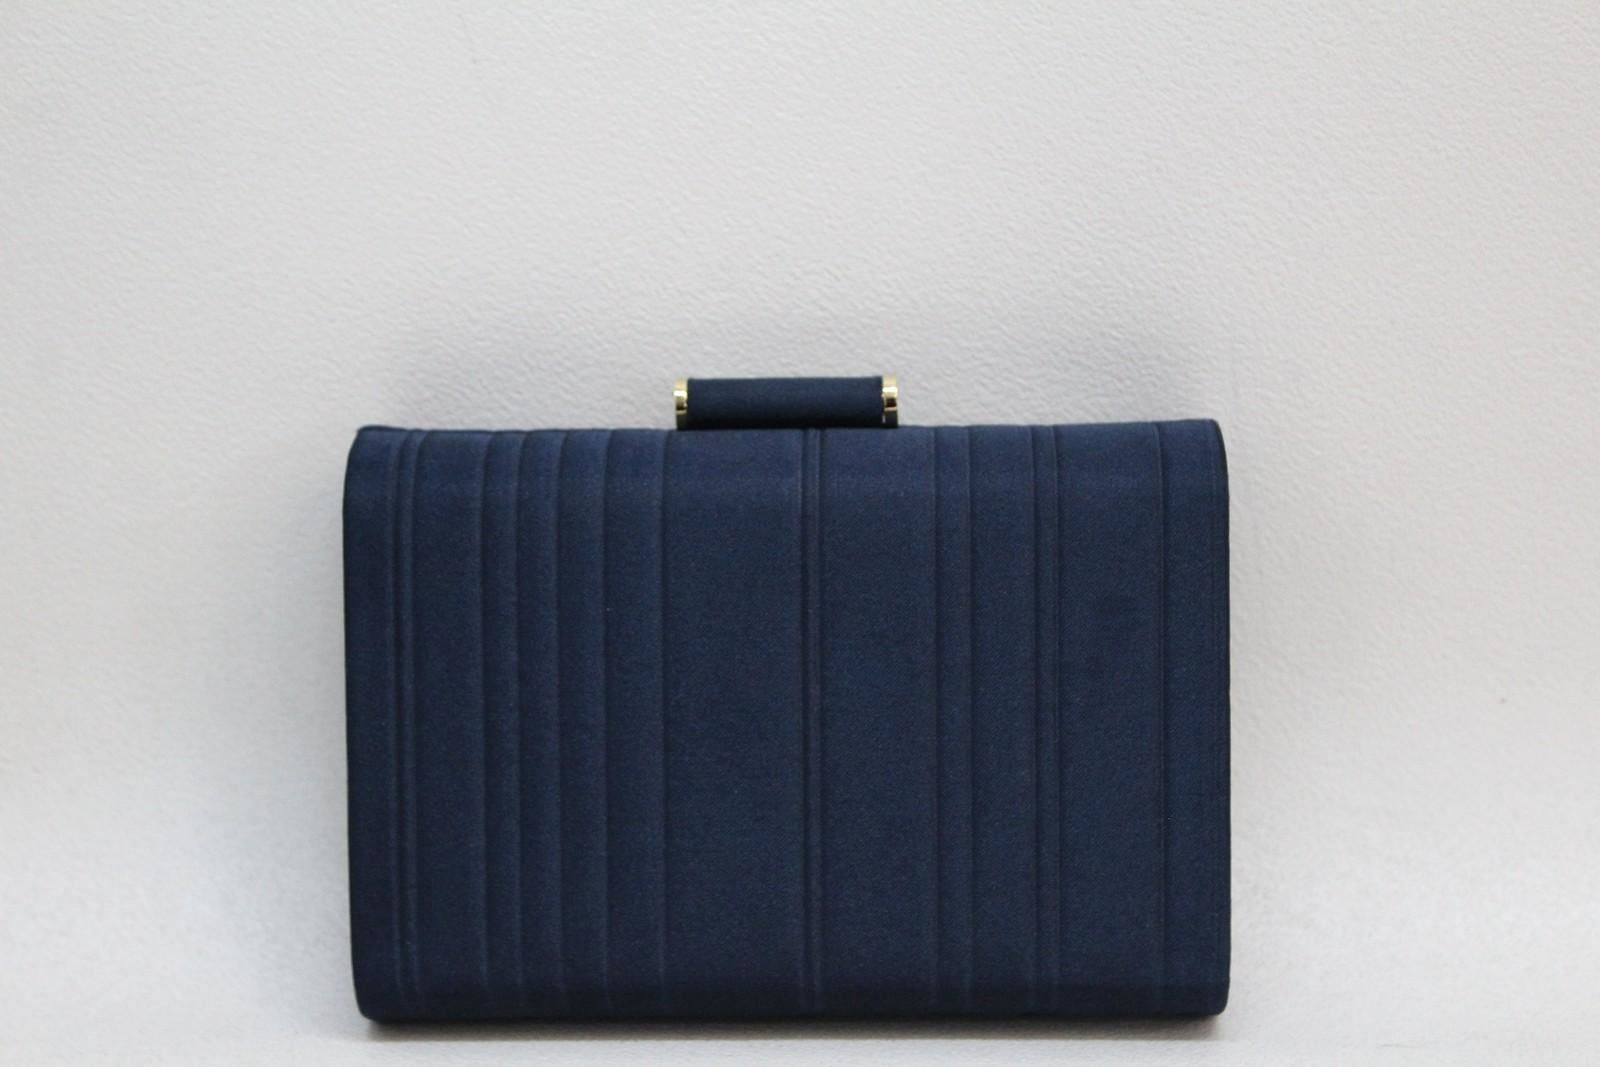 ESTEE-LAUDER-Ladies-Blue-Gold-Tone-Hardware-Ripple-Effect-Boxy-Clutch-Bag